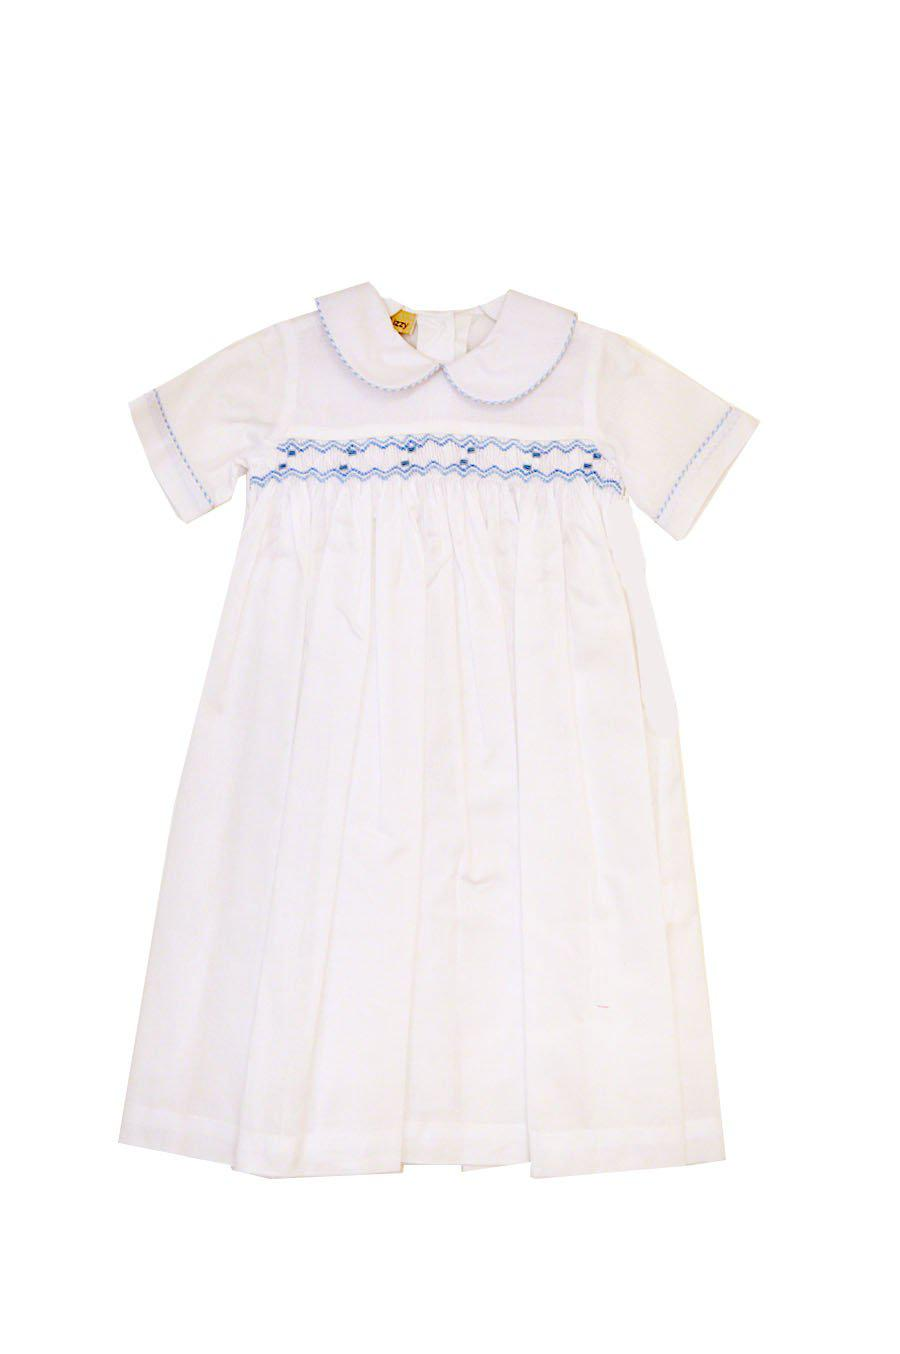 3ac6b680b06 White batiste baby boy hand smocked daygown NB only – Little Threads ...